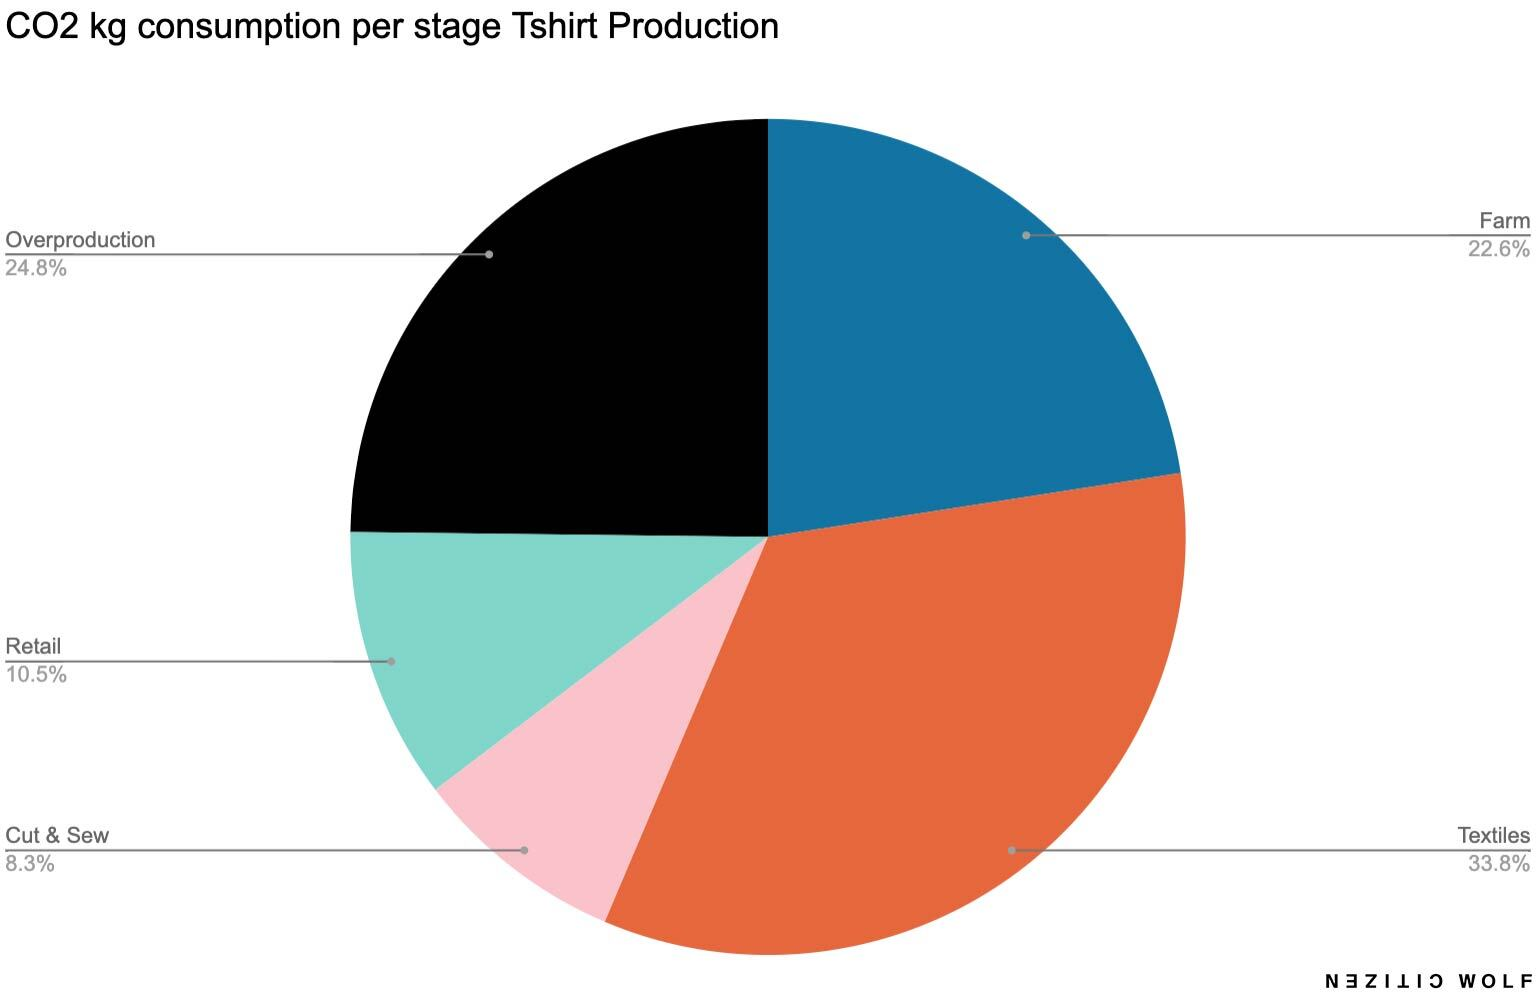 CO2 kg consumption per stage Tshirt Production